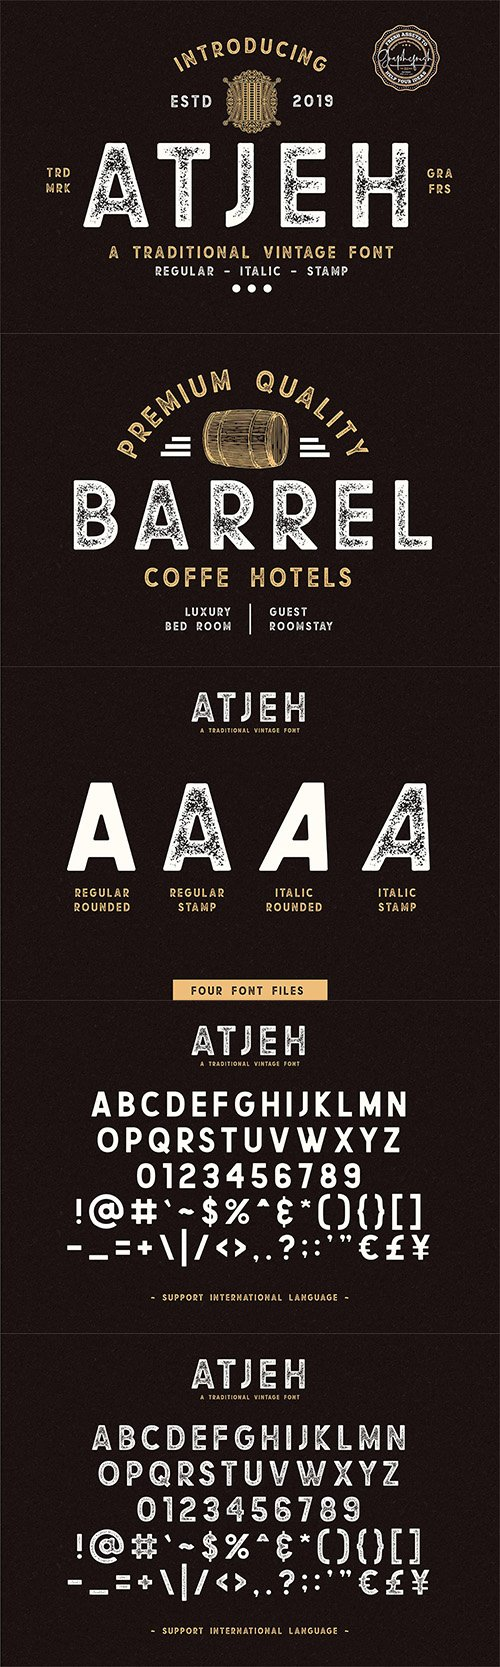 Atjeh - A Traditional Vintage Font 3542390